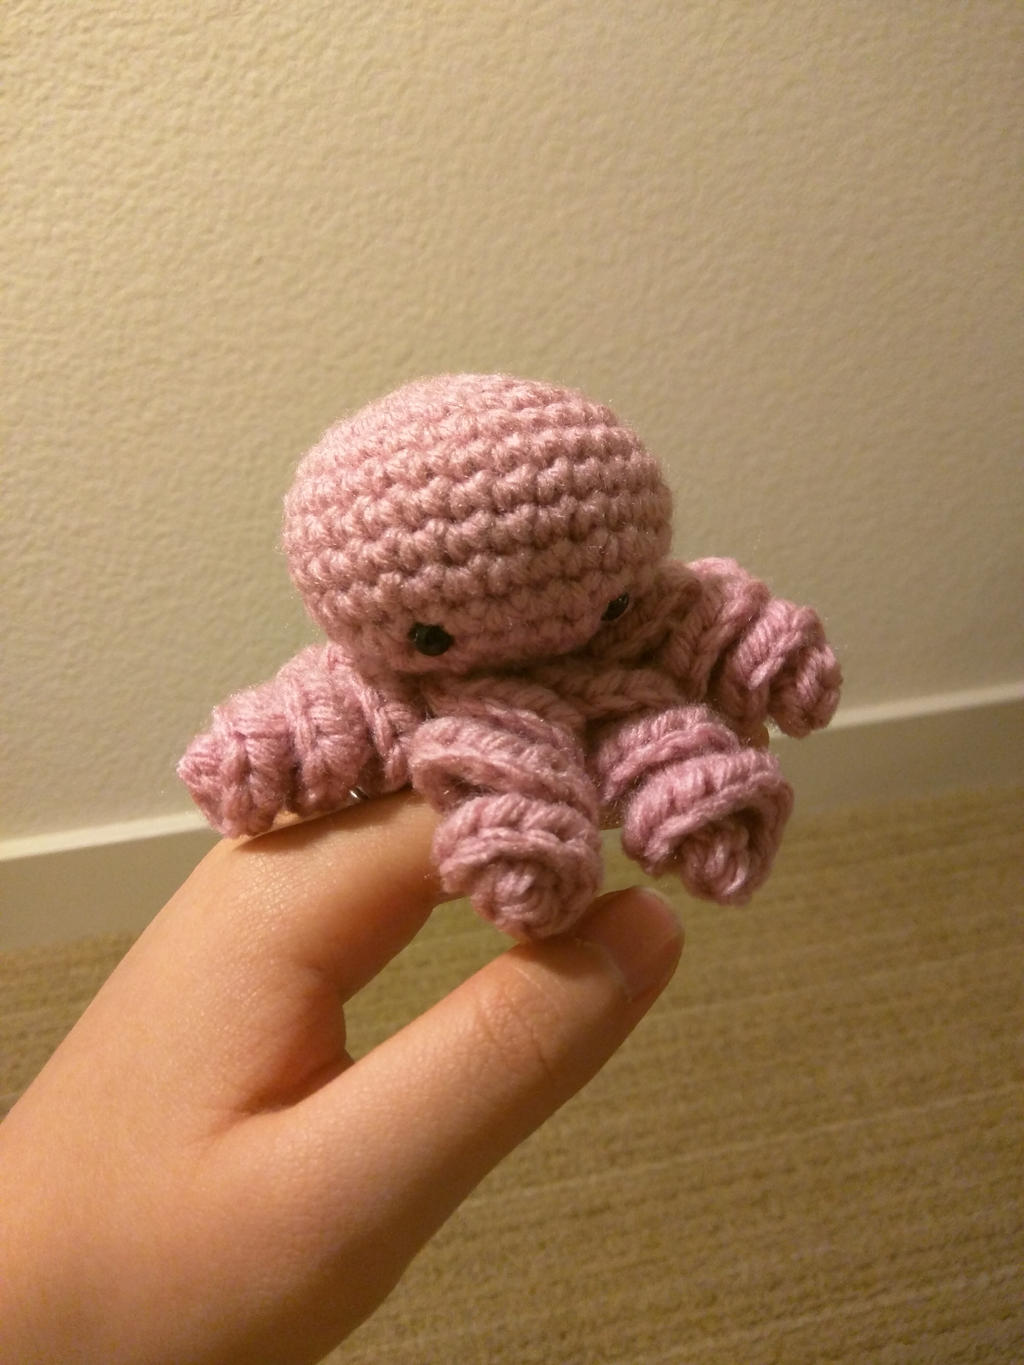 Amigurumi Octopus by Opundo on DeviantArt